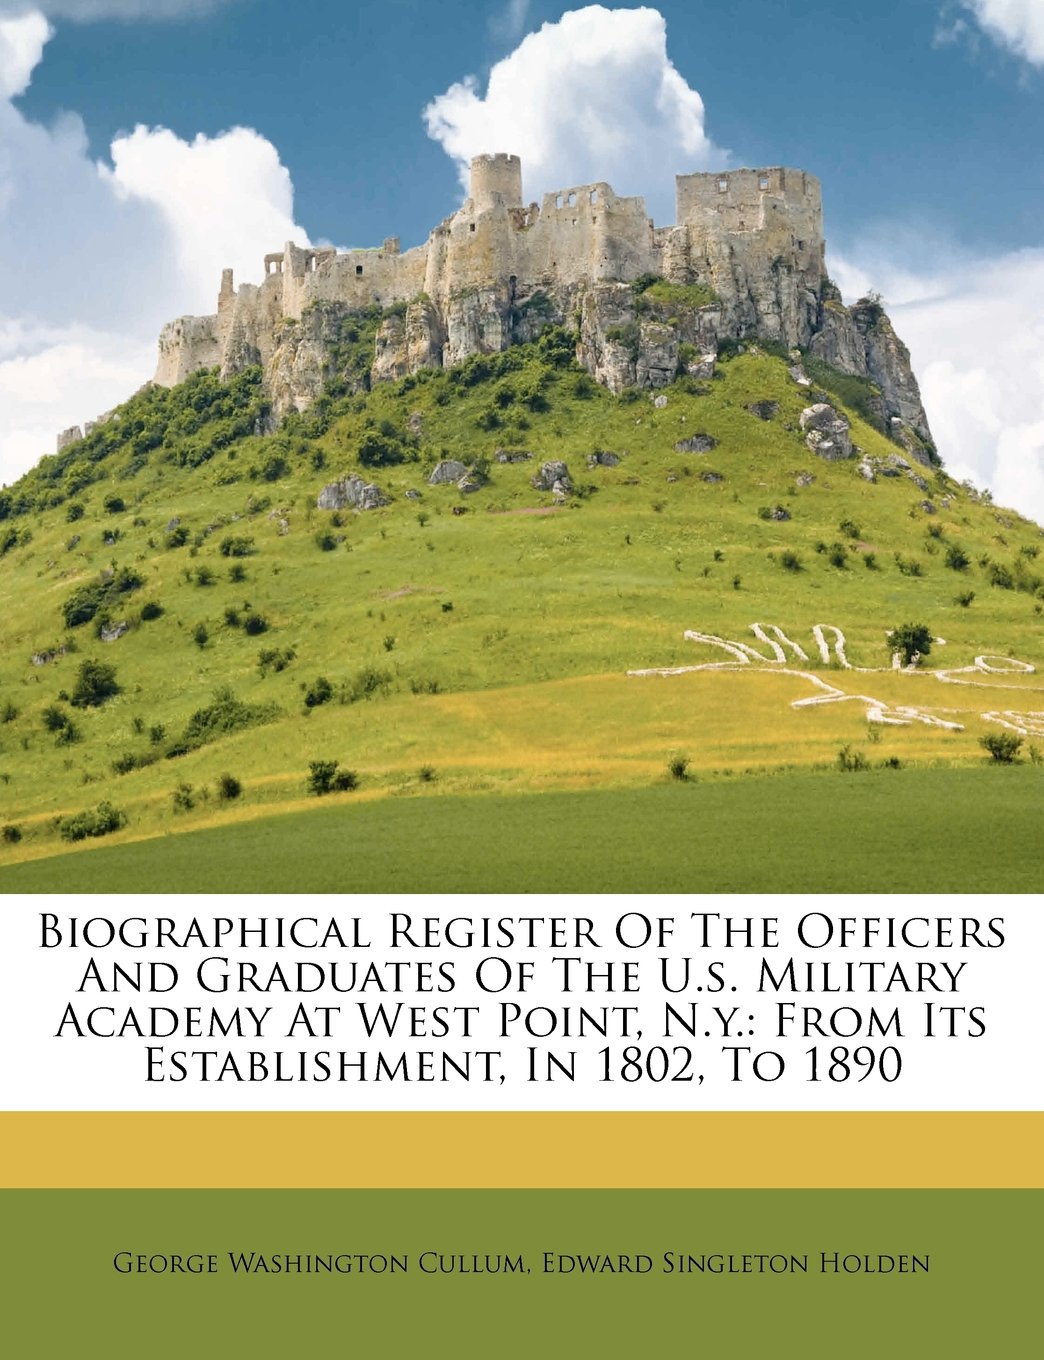 Biographical Register Of The Officers And Graduates Of The U.s. Military Academy At West Point, N.y.: From Its Establishment, In 1802, To 1890 pdf